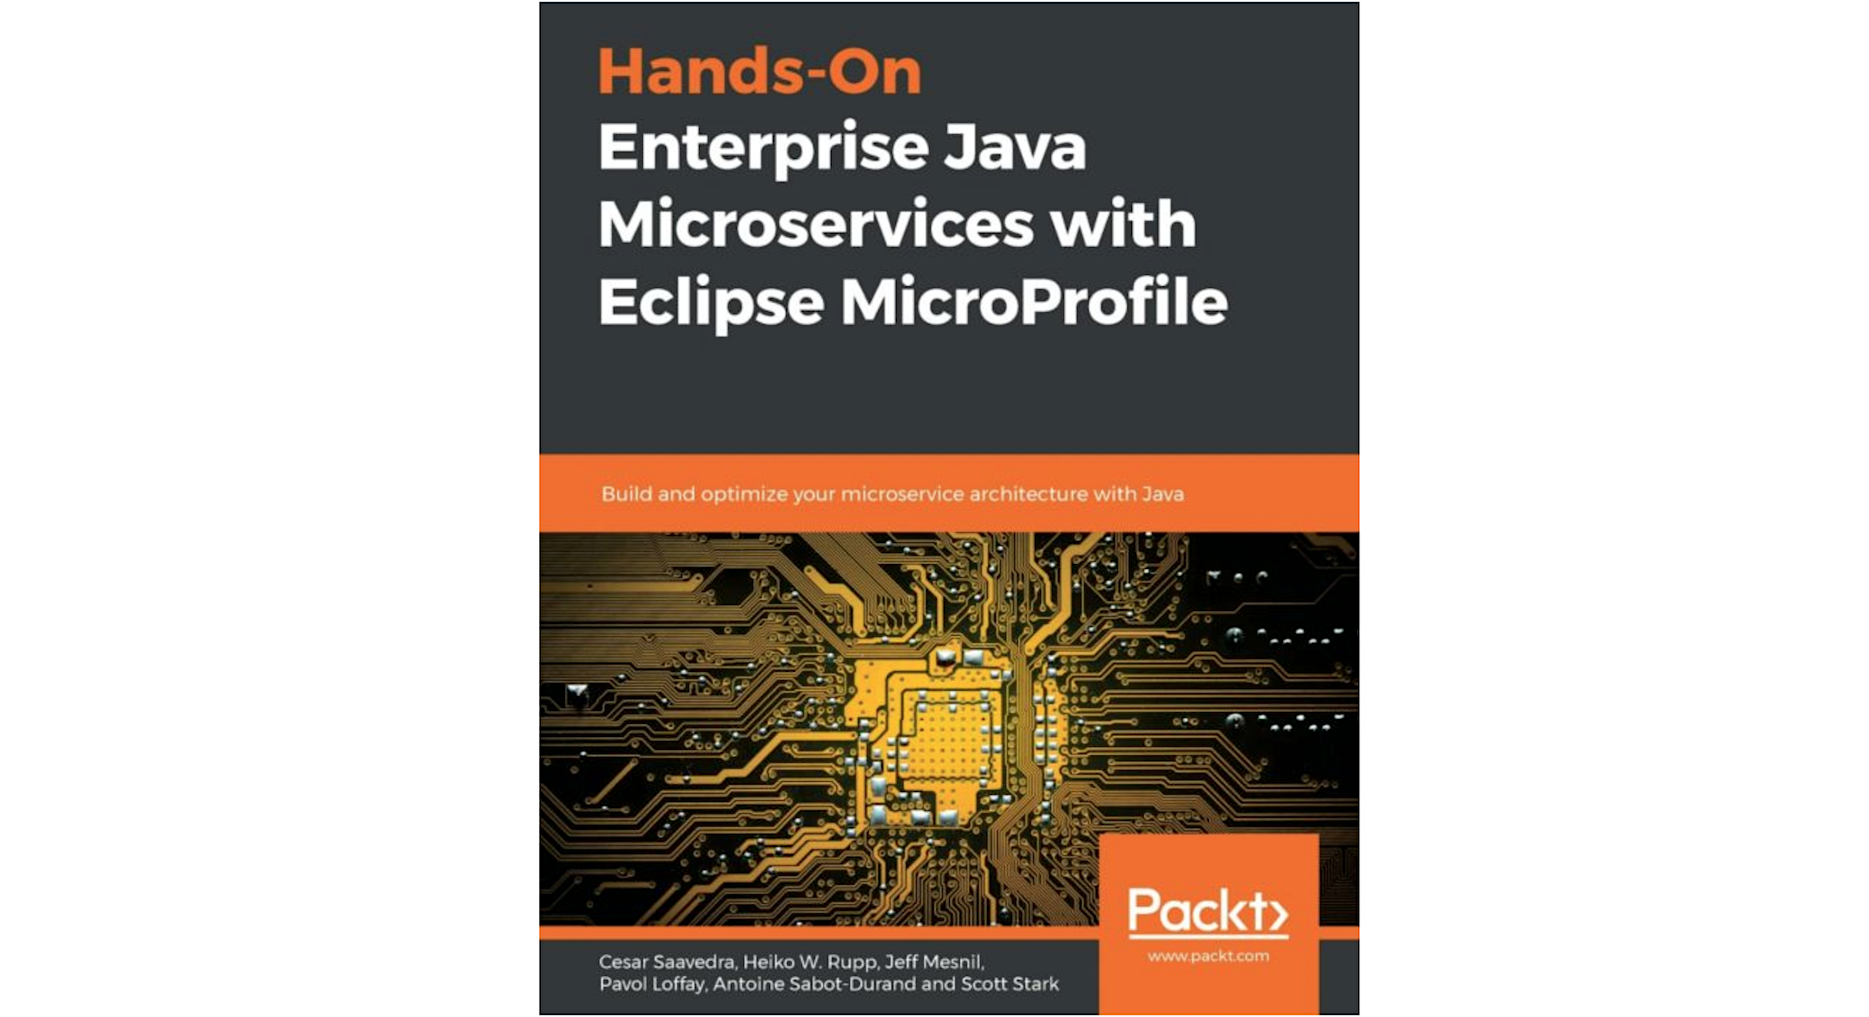 New Eclipse MicroProfile book provides introduction to enterprise Java microservices